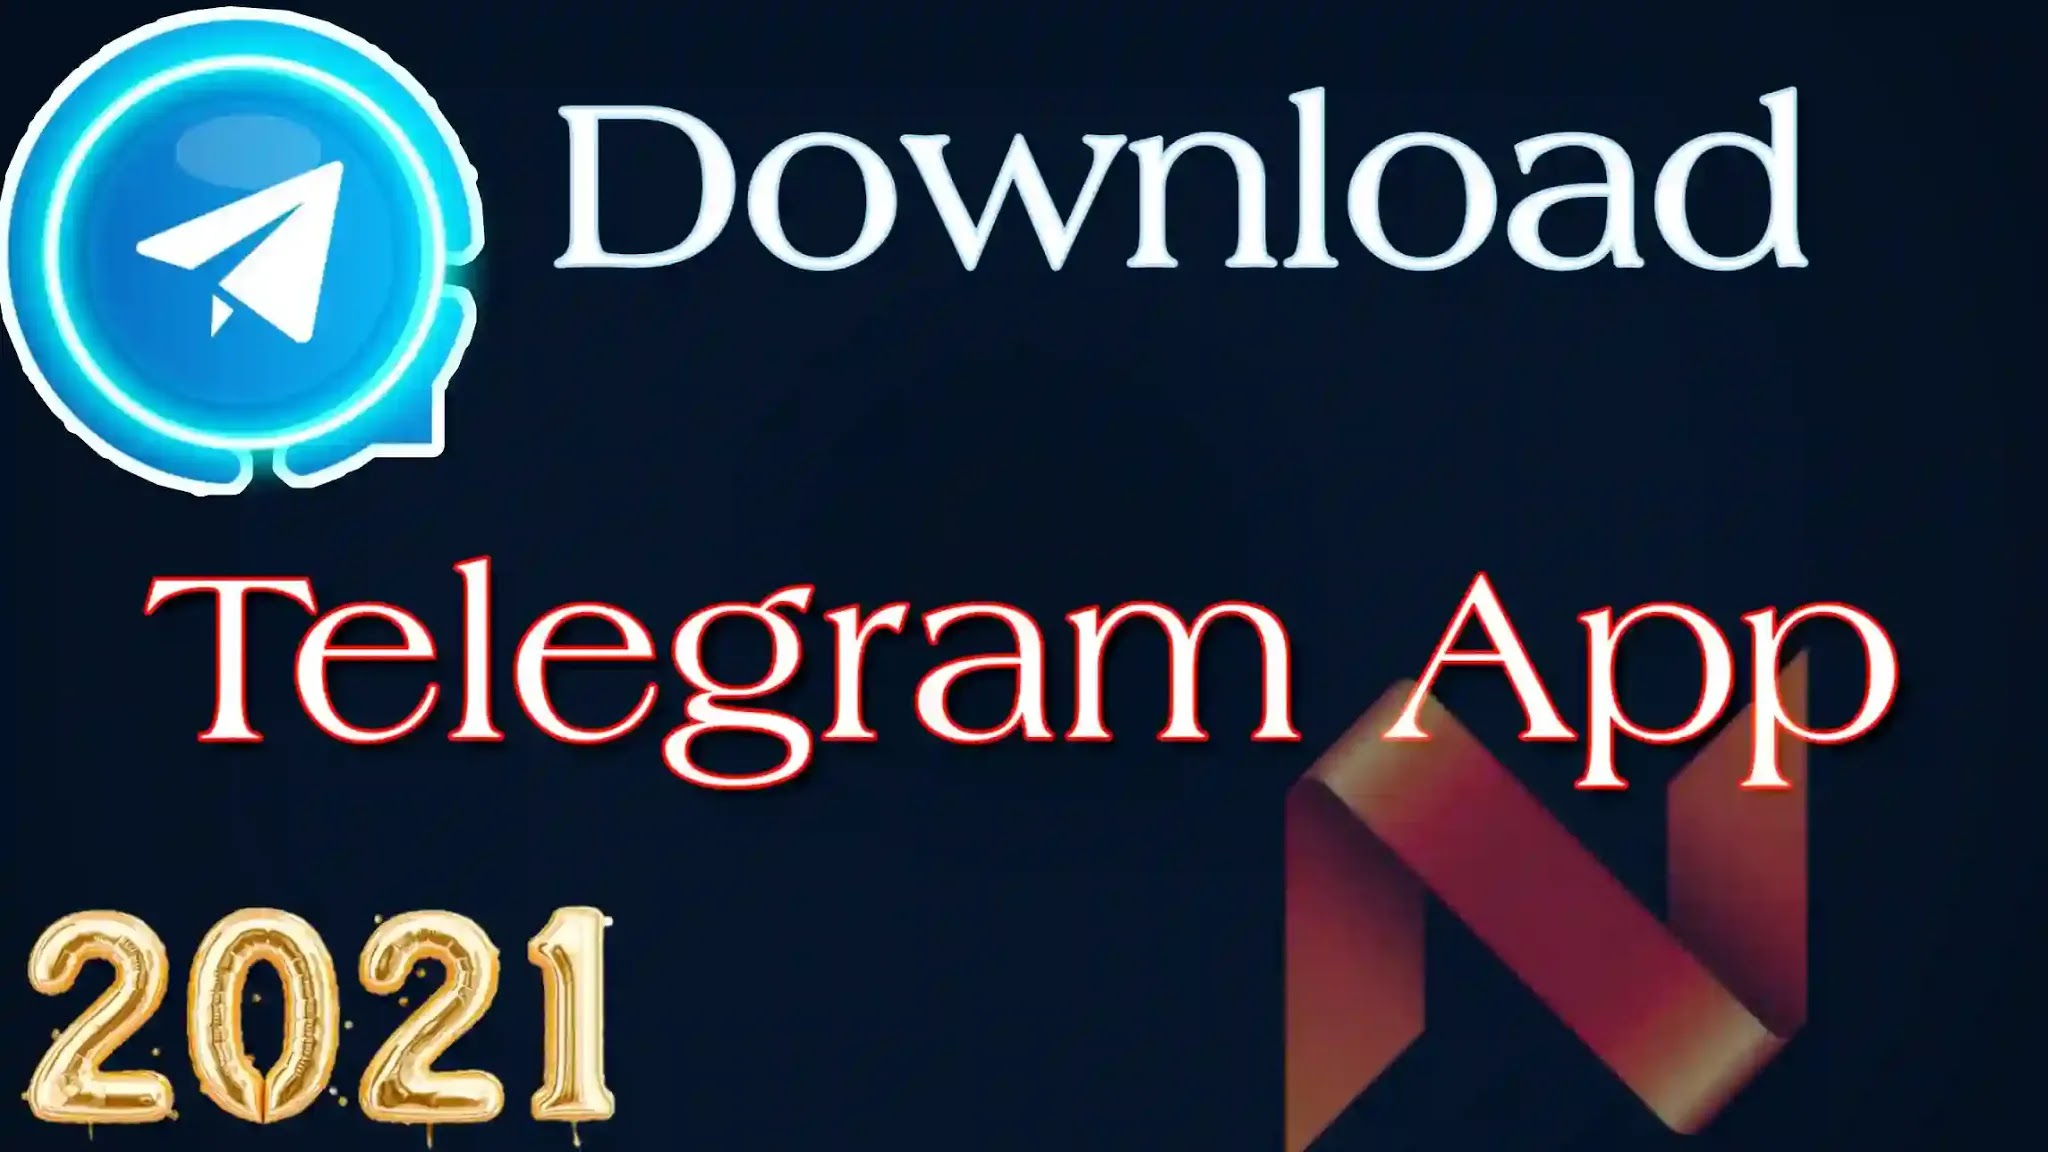 Download the Telegram app for all devices